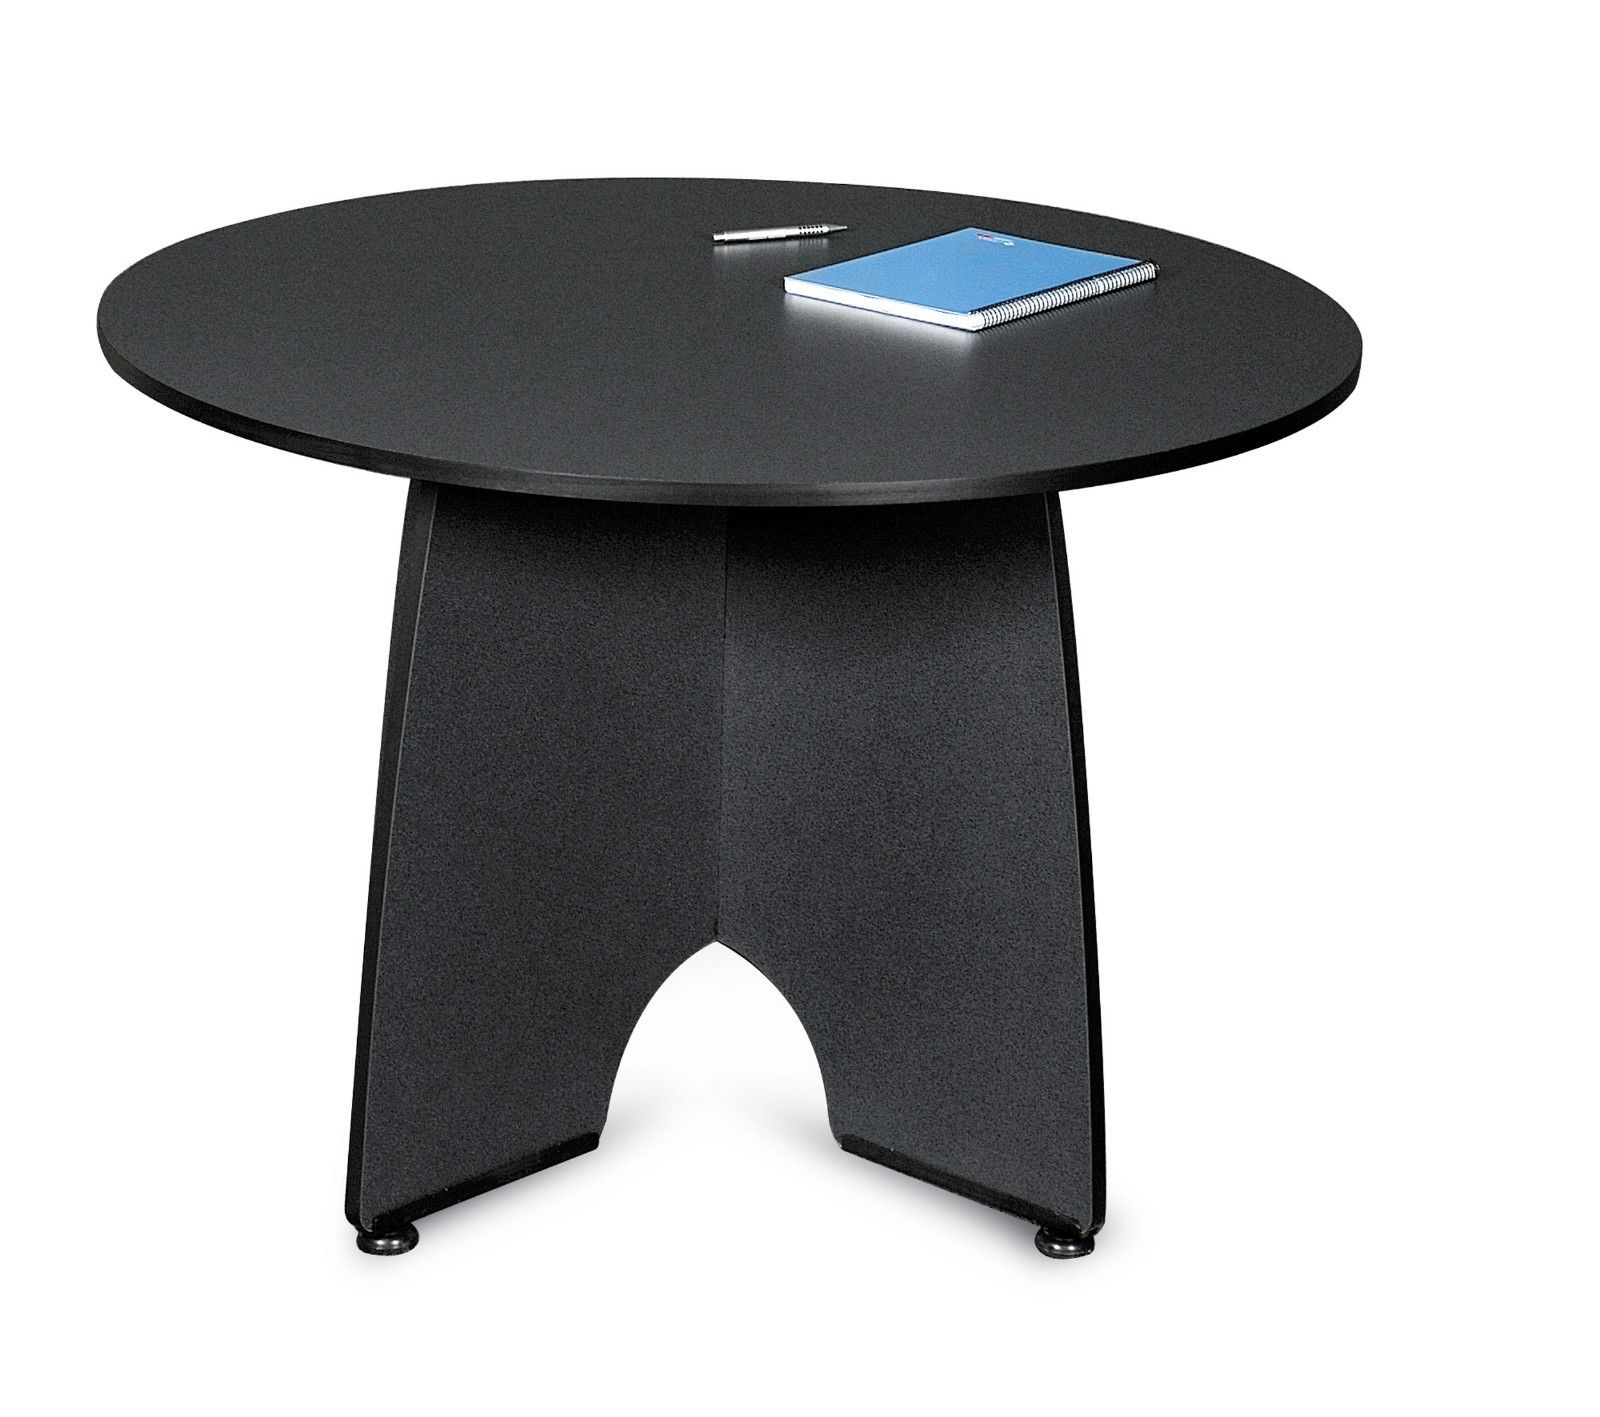 "#20 - 43"" Round Meeting Table with High-Pressure Laminate Surface and Graphite Finish"